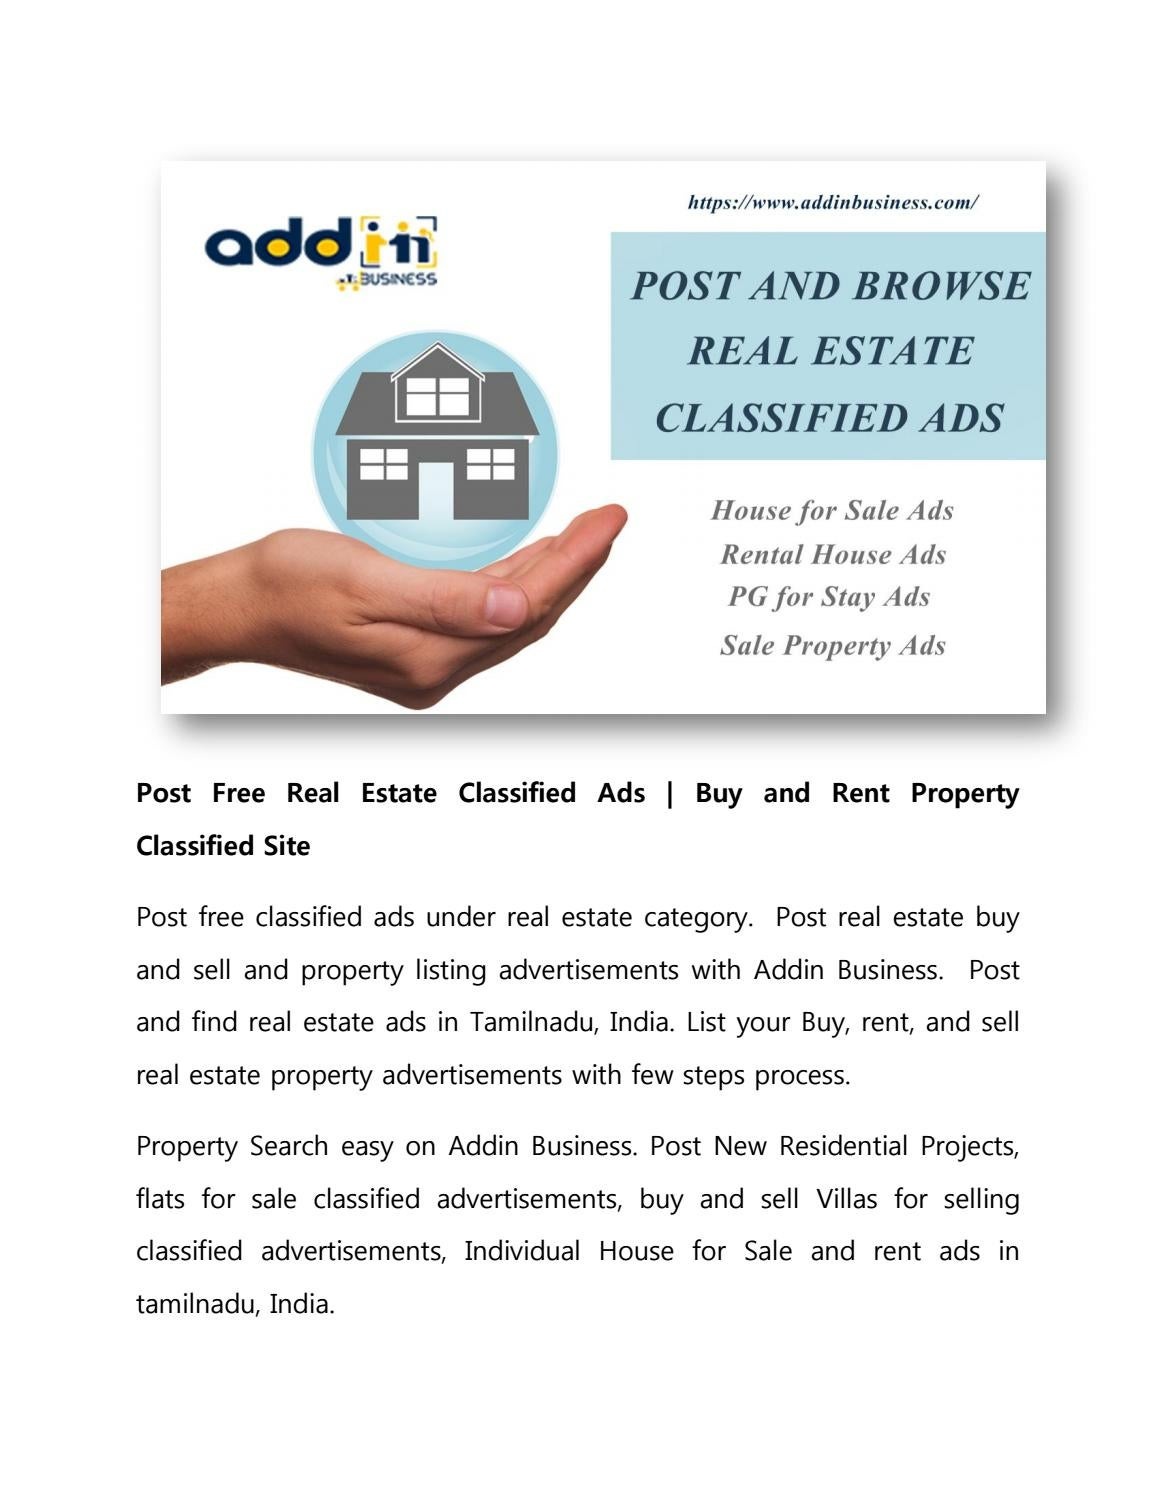 Post Free Real Estate Classified Ads | Buy and Rent Property